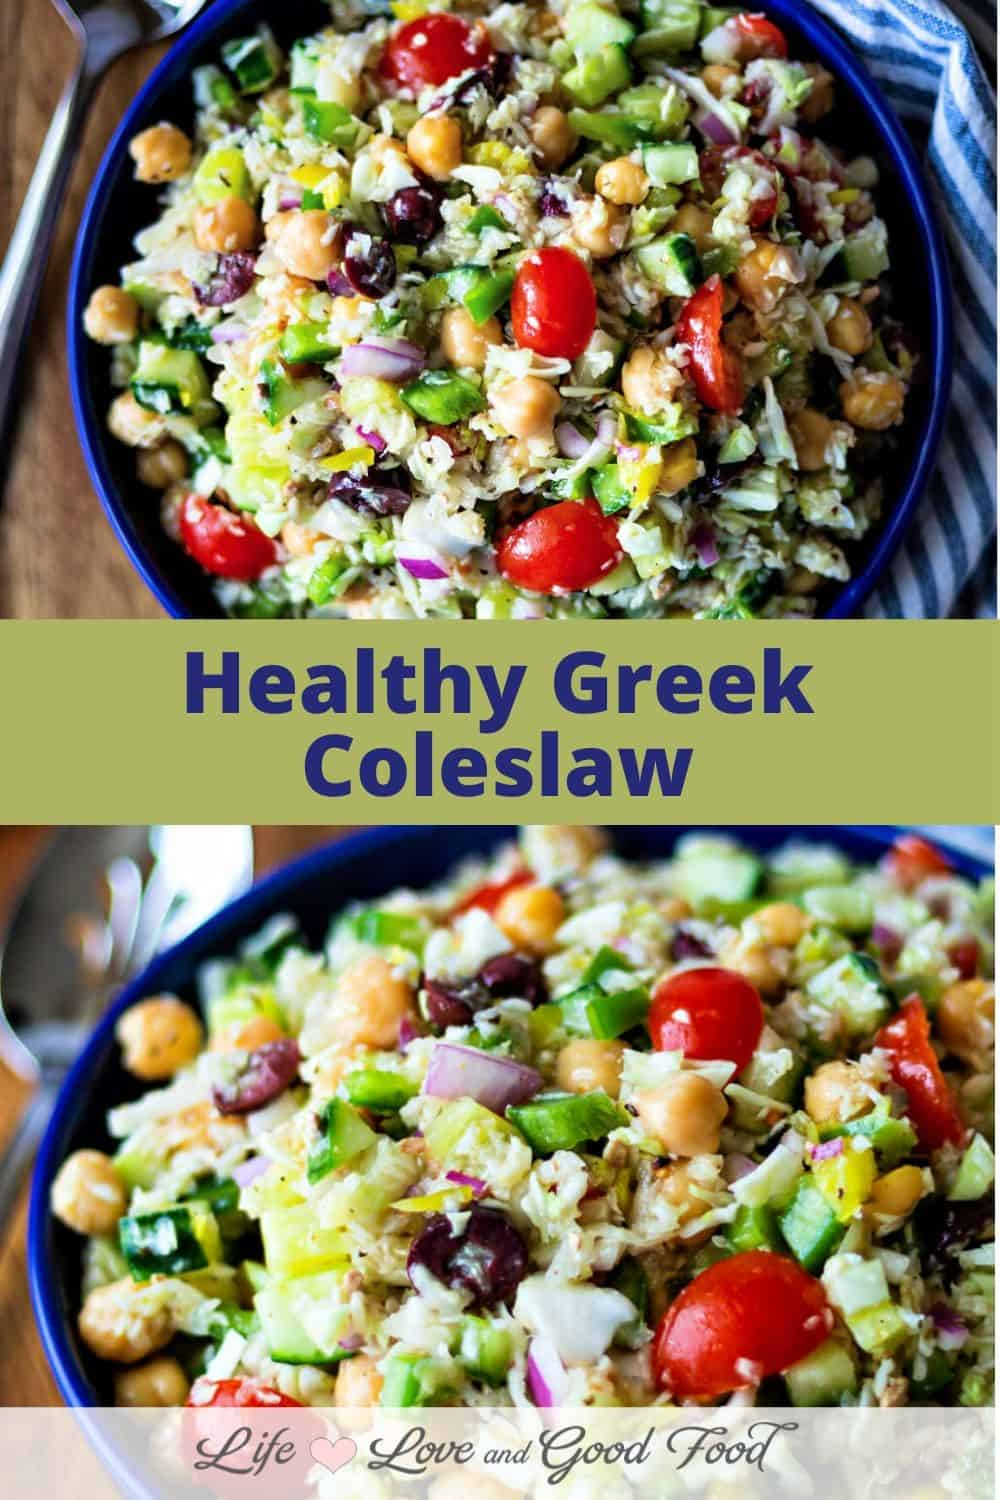 Healthy Greek Coleslaw is nothing like the classic coleslaw you're accustomed to having at Summer barbecues and cookouts. Skip the heavy mayonnaise dressing, this style coleslaw is tossed with a lemony Greek dressing. Green cabbage, cucumber, tomatoes, red onions, and bell pepper get tossed together with chickpeas, kalamata olives, and peperoncini for a big bowl of deliciousness. #coleslaw #sidedish #cabbage